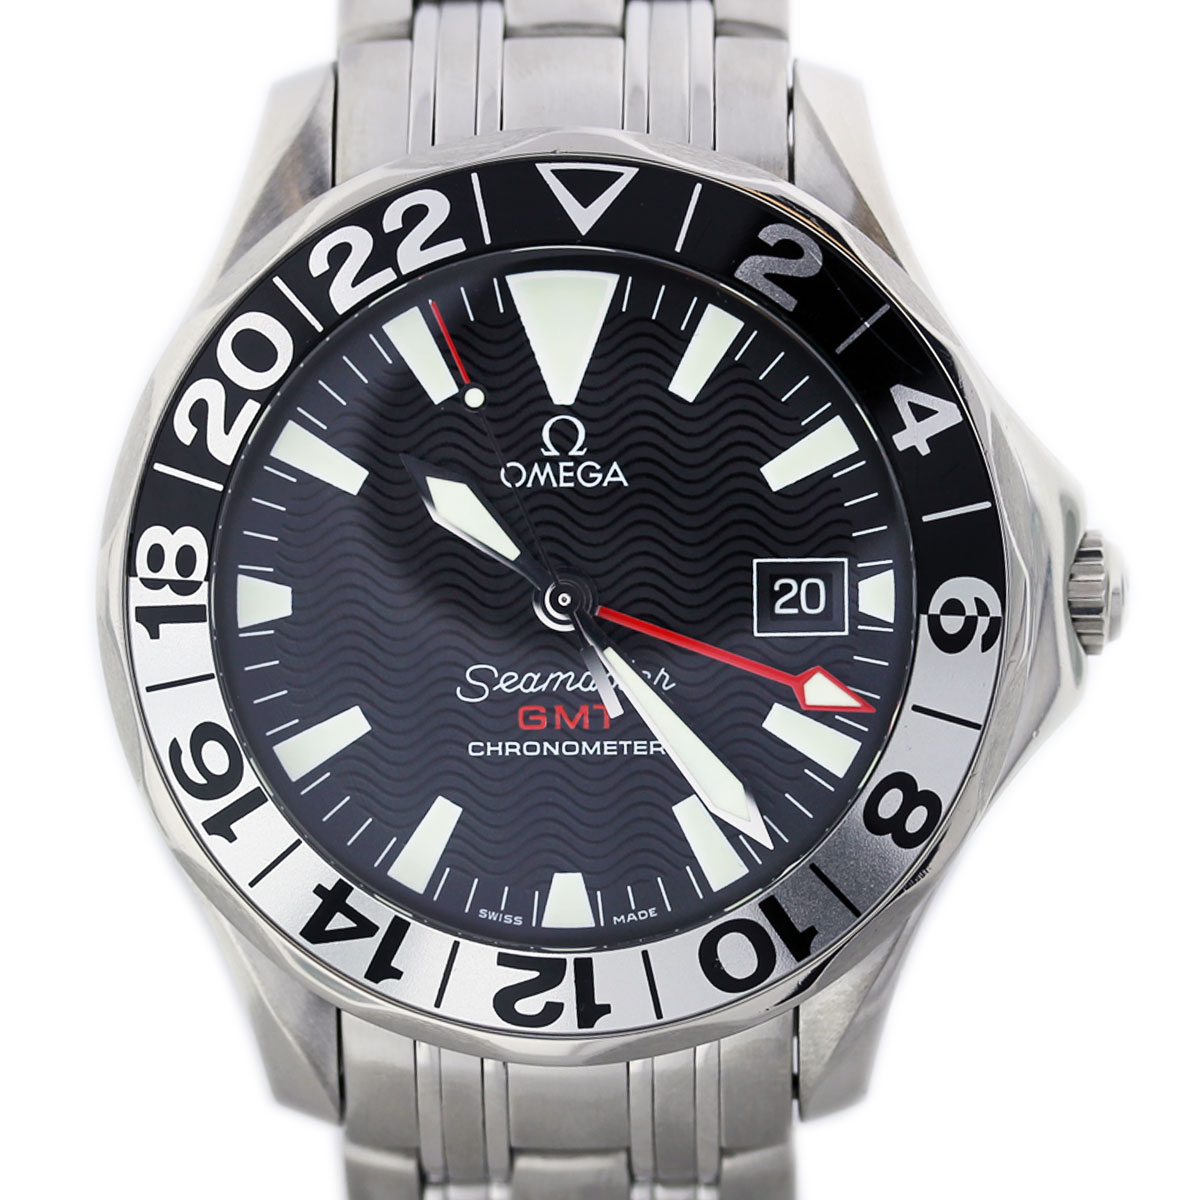 Boca Raton Shopping >> Omega Seamaster 2534.50 GMT 50th Anniversary Edition Watch Boca Raton